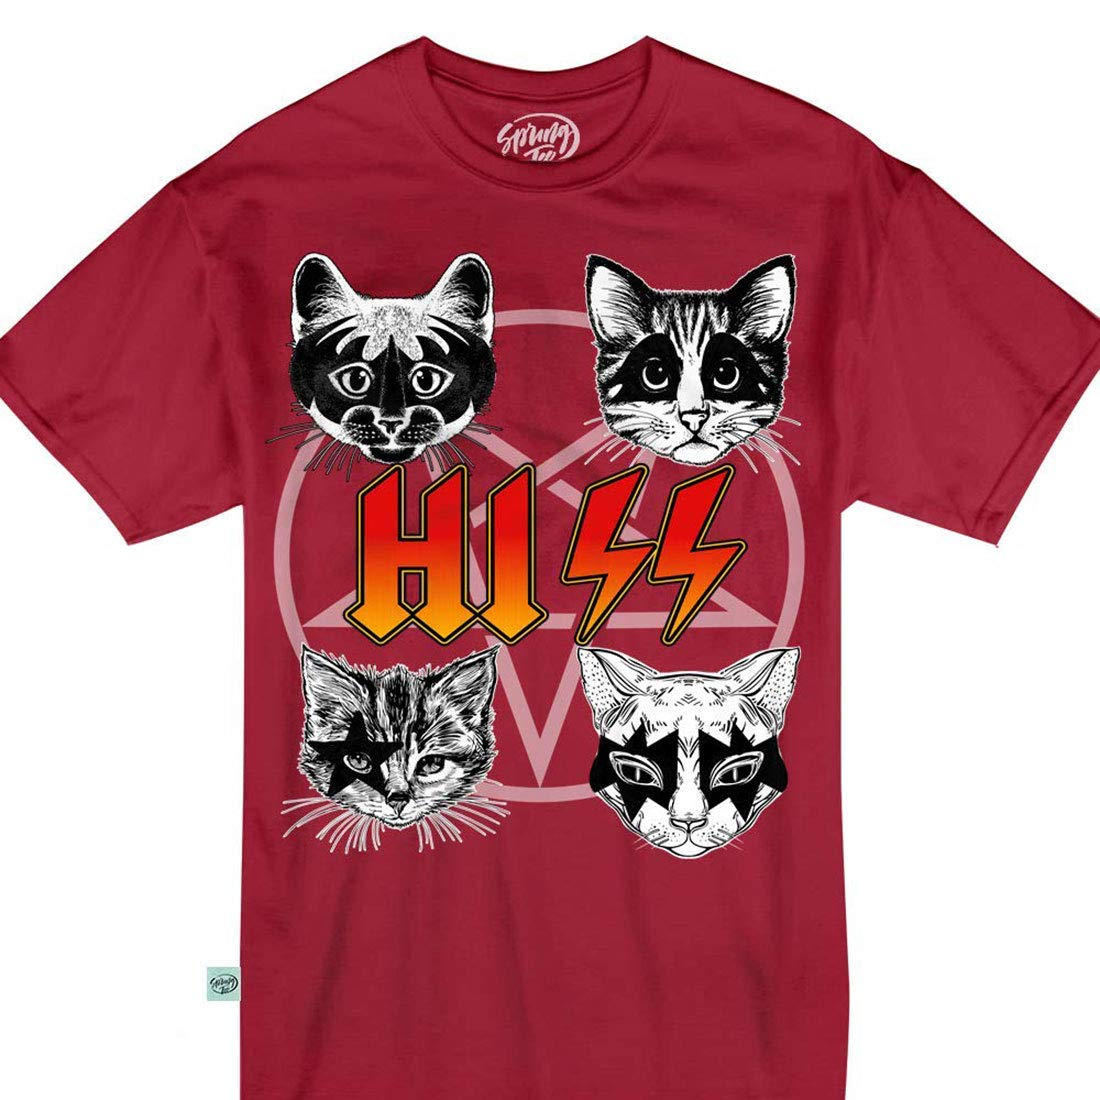 Cats Rock And Roll Heavy Metal Music Satan Funny Cute Shirts